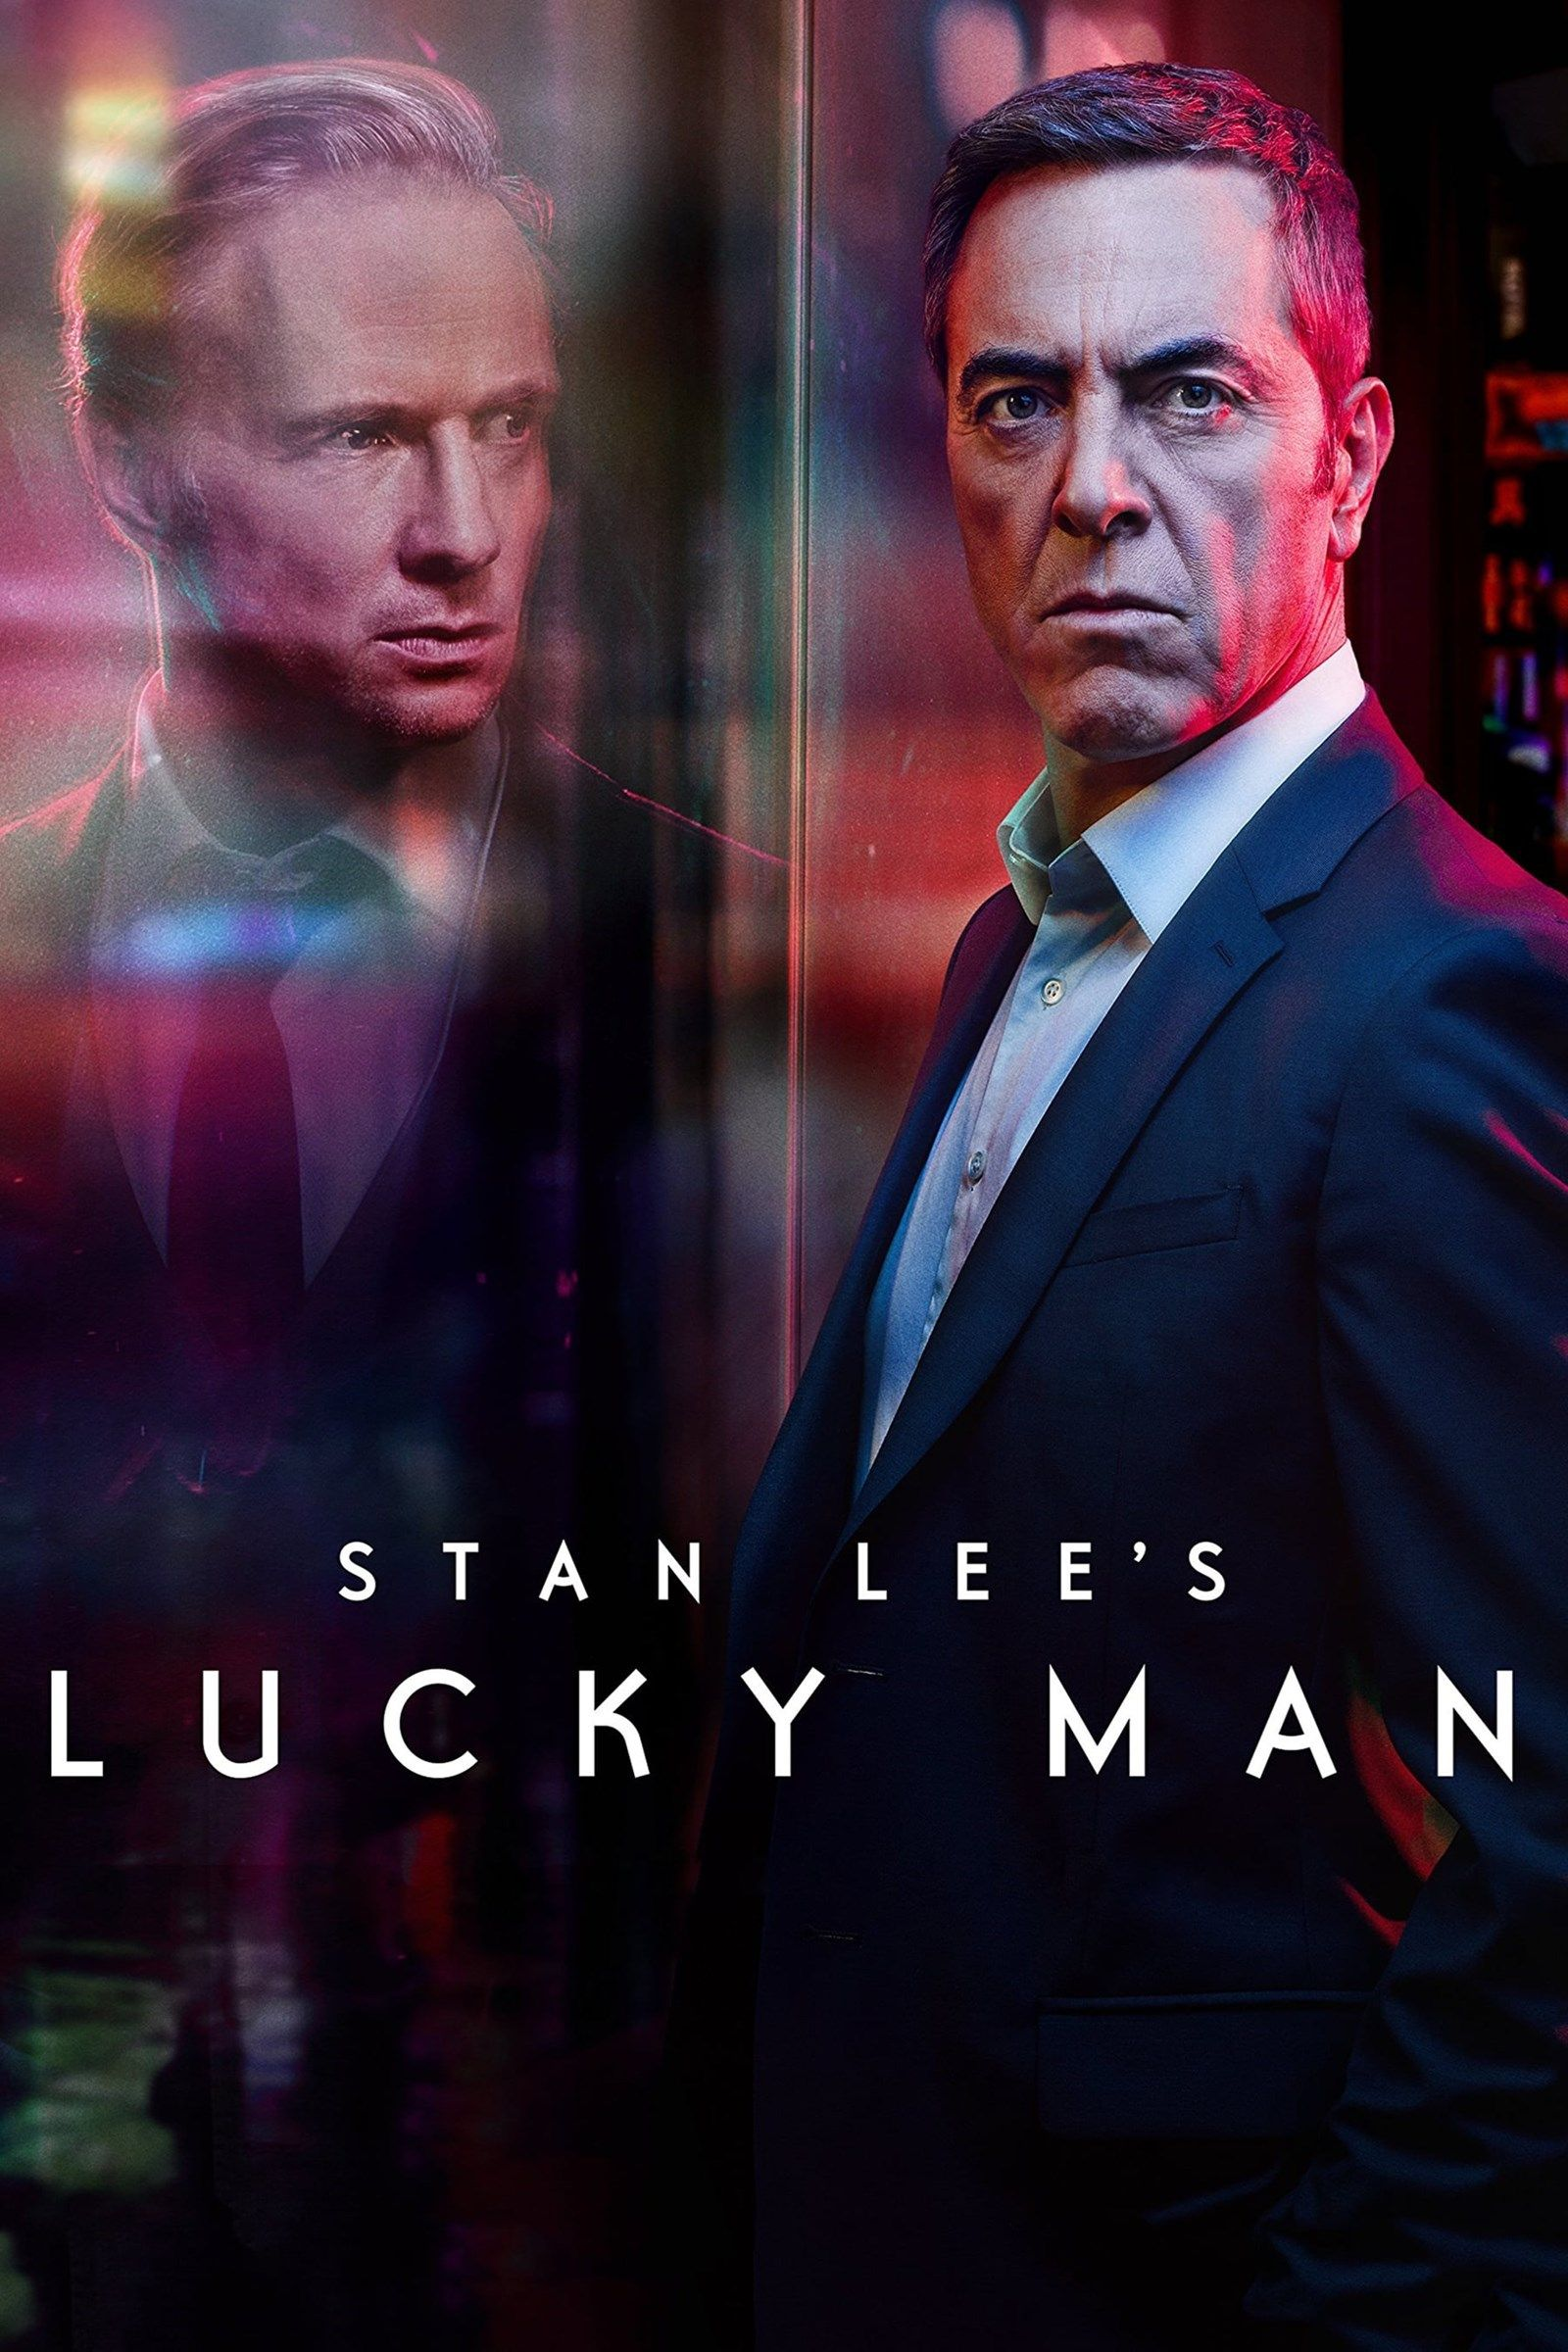 Download Stan Lee's Lucky Man S03E05 | Download Tv Series | Stan lee